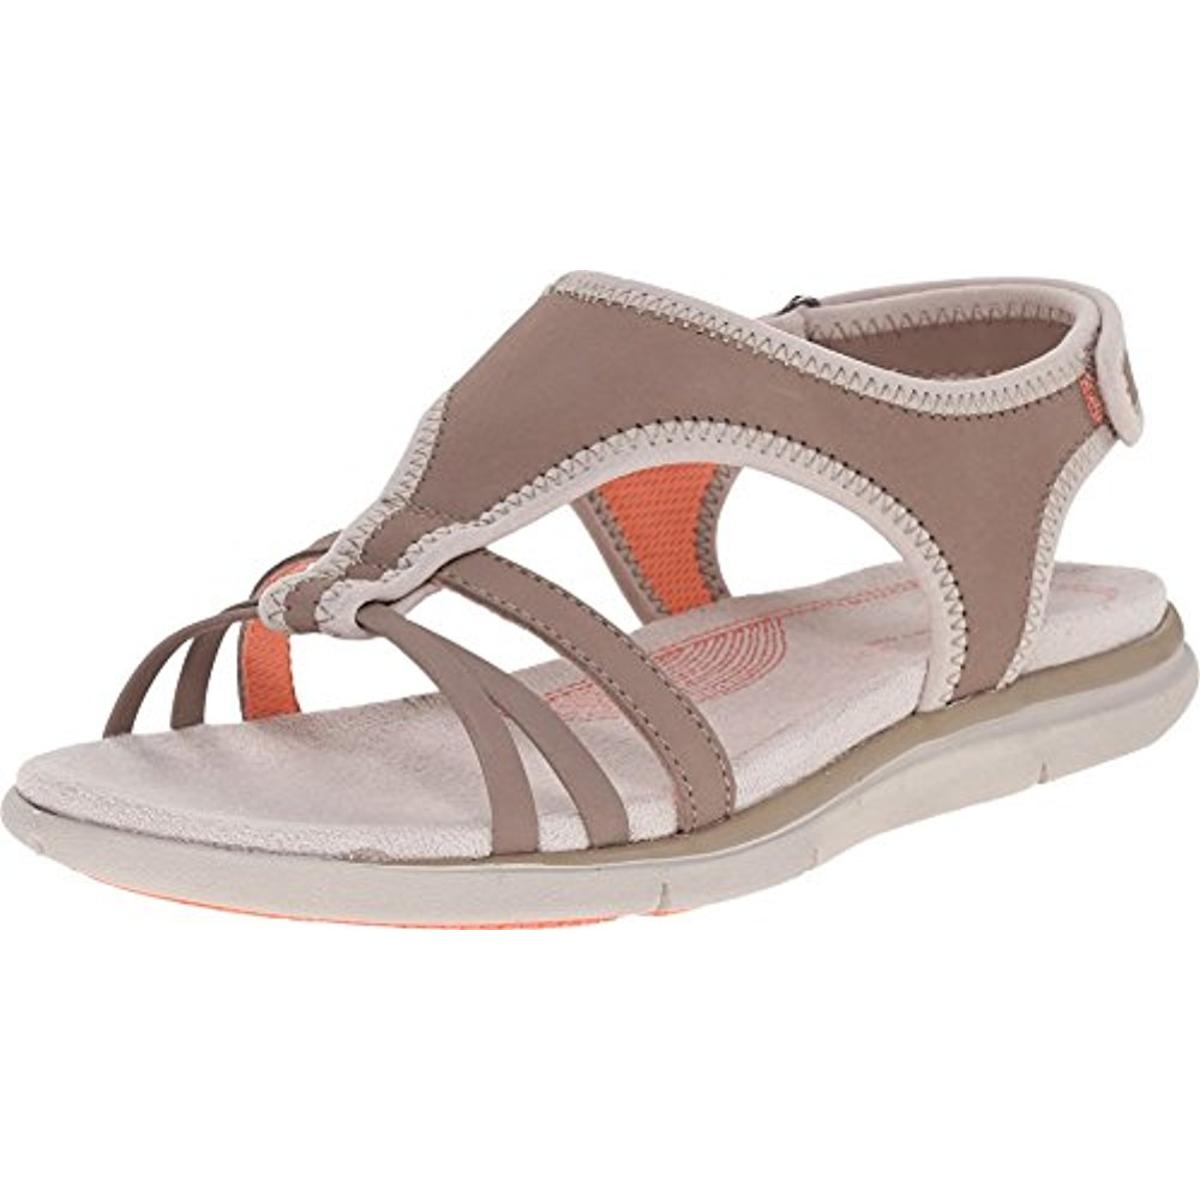 Amazing Hush Puppies Vesper Leather Sandals Size 9  For Women